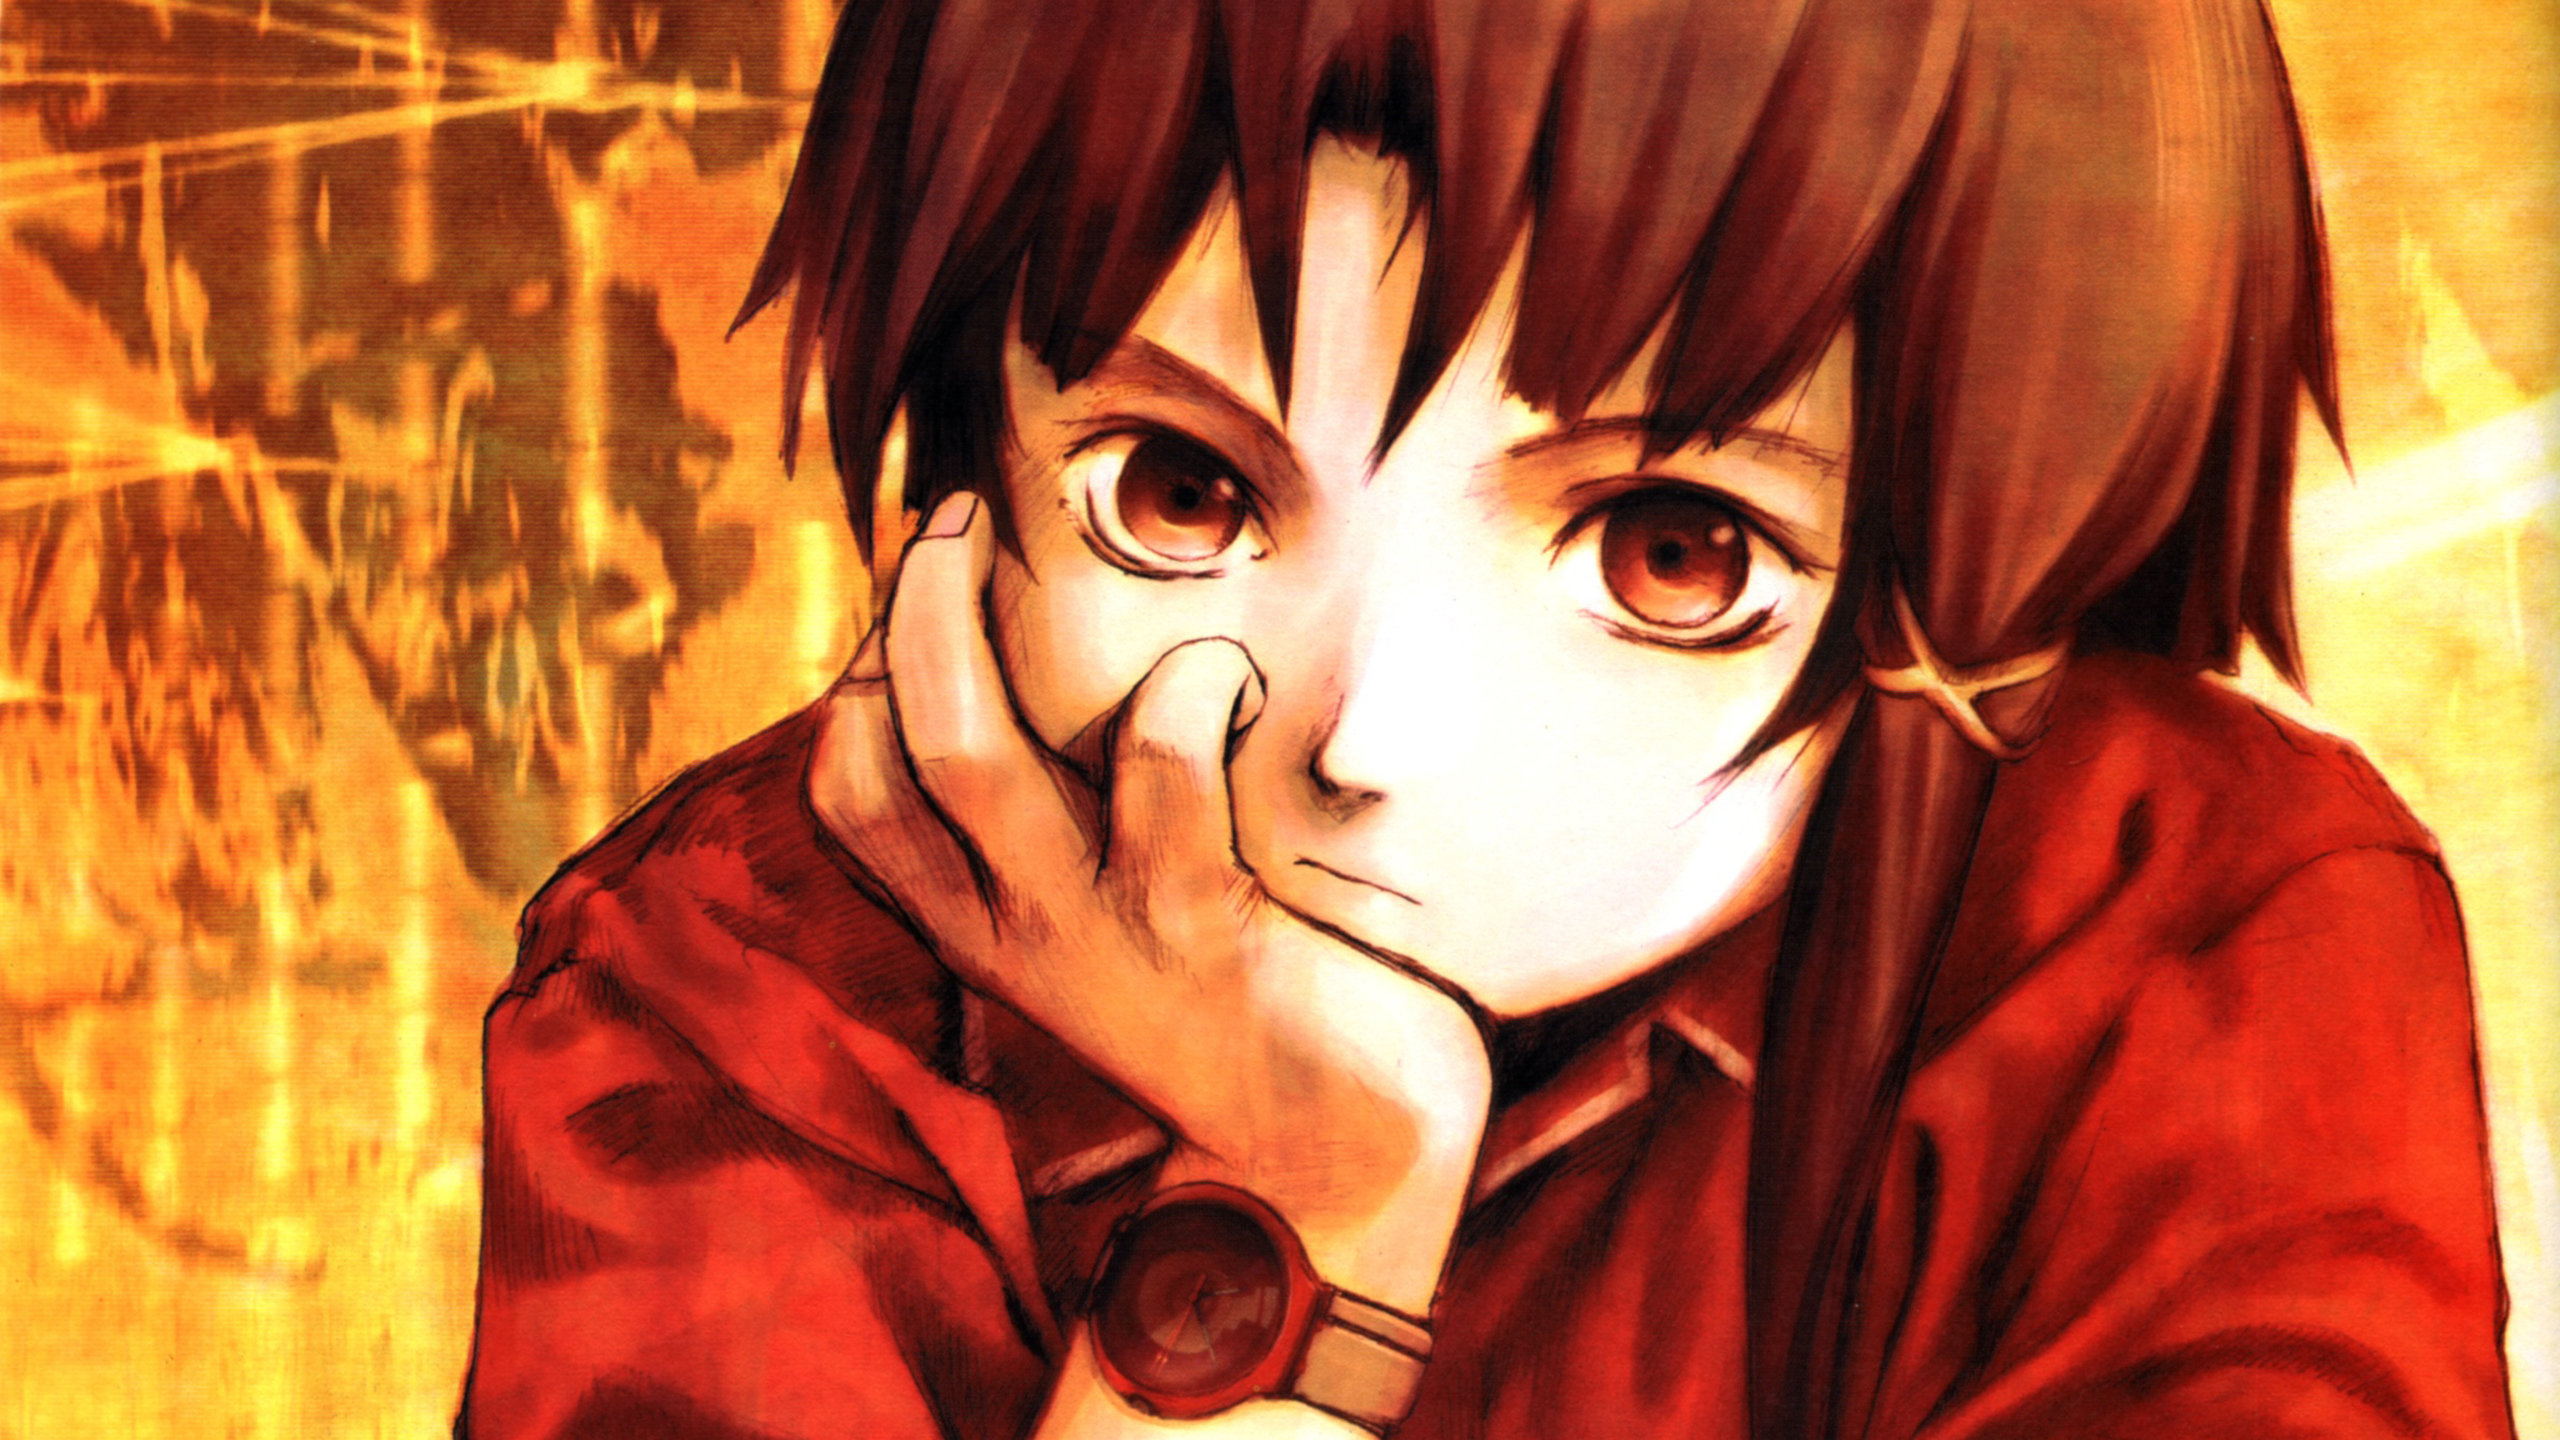 Free download Serial Experiments Lain wallpaper ID:127922 hd 2560x1440 for desktop